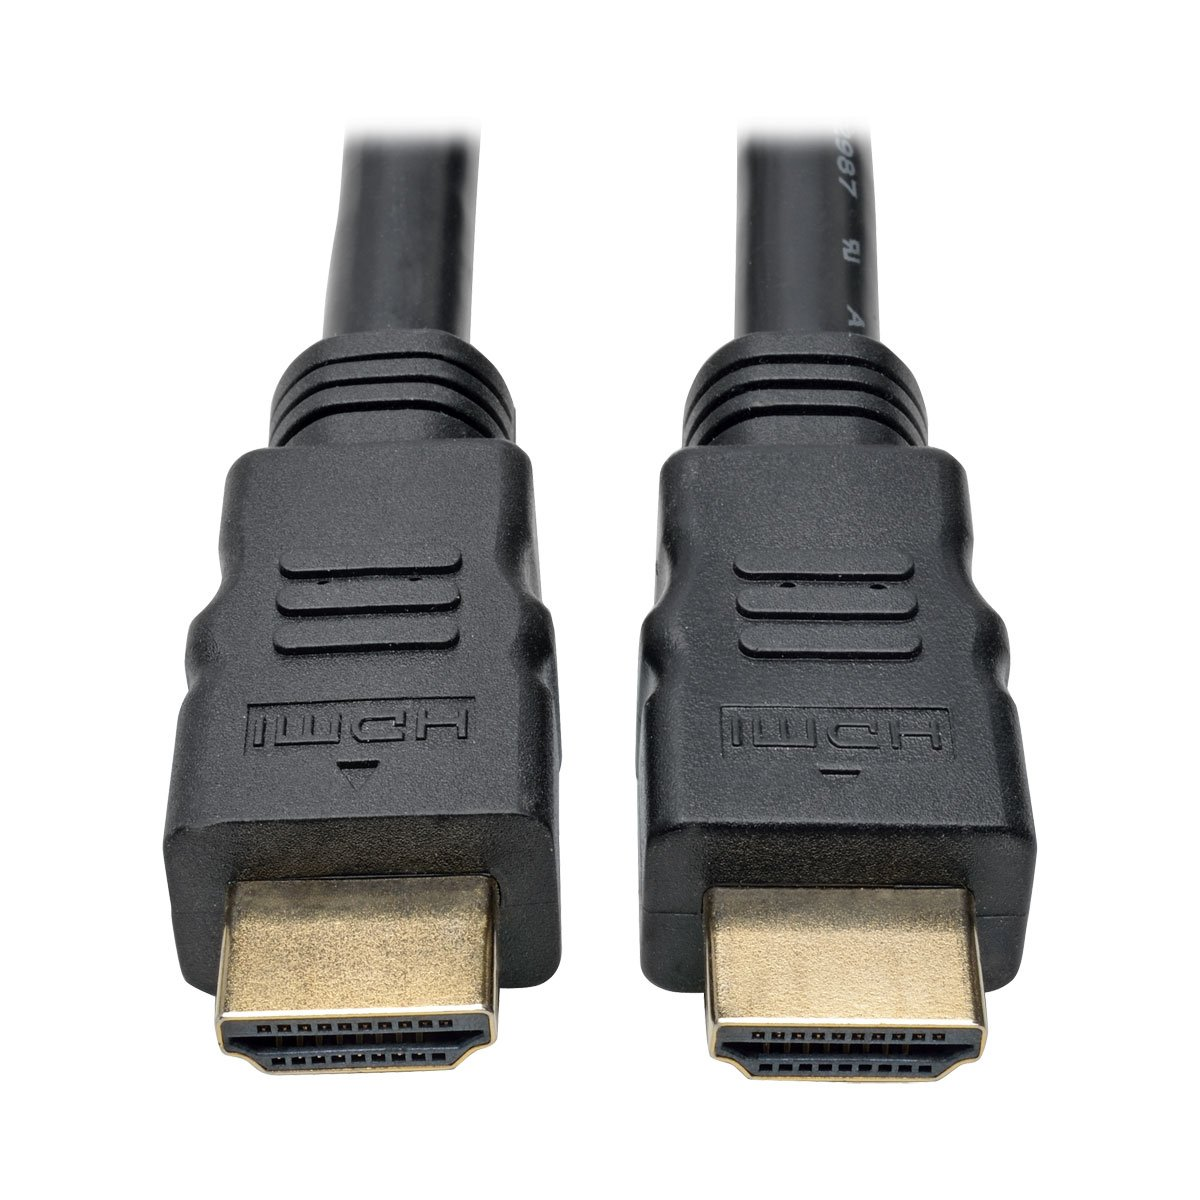 Tripp Lite High Speed HDMI Cable Active with Built-In Signal Booster 1080p @ 60Hz M/M Black 100ft 100' (P568-100-ACT)